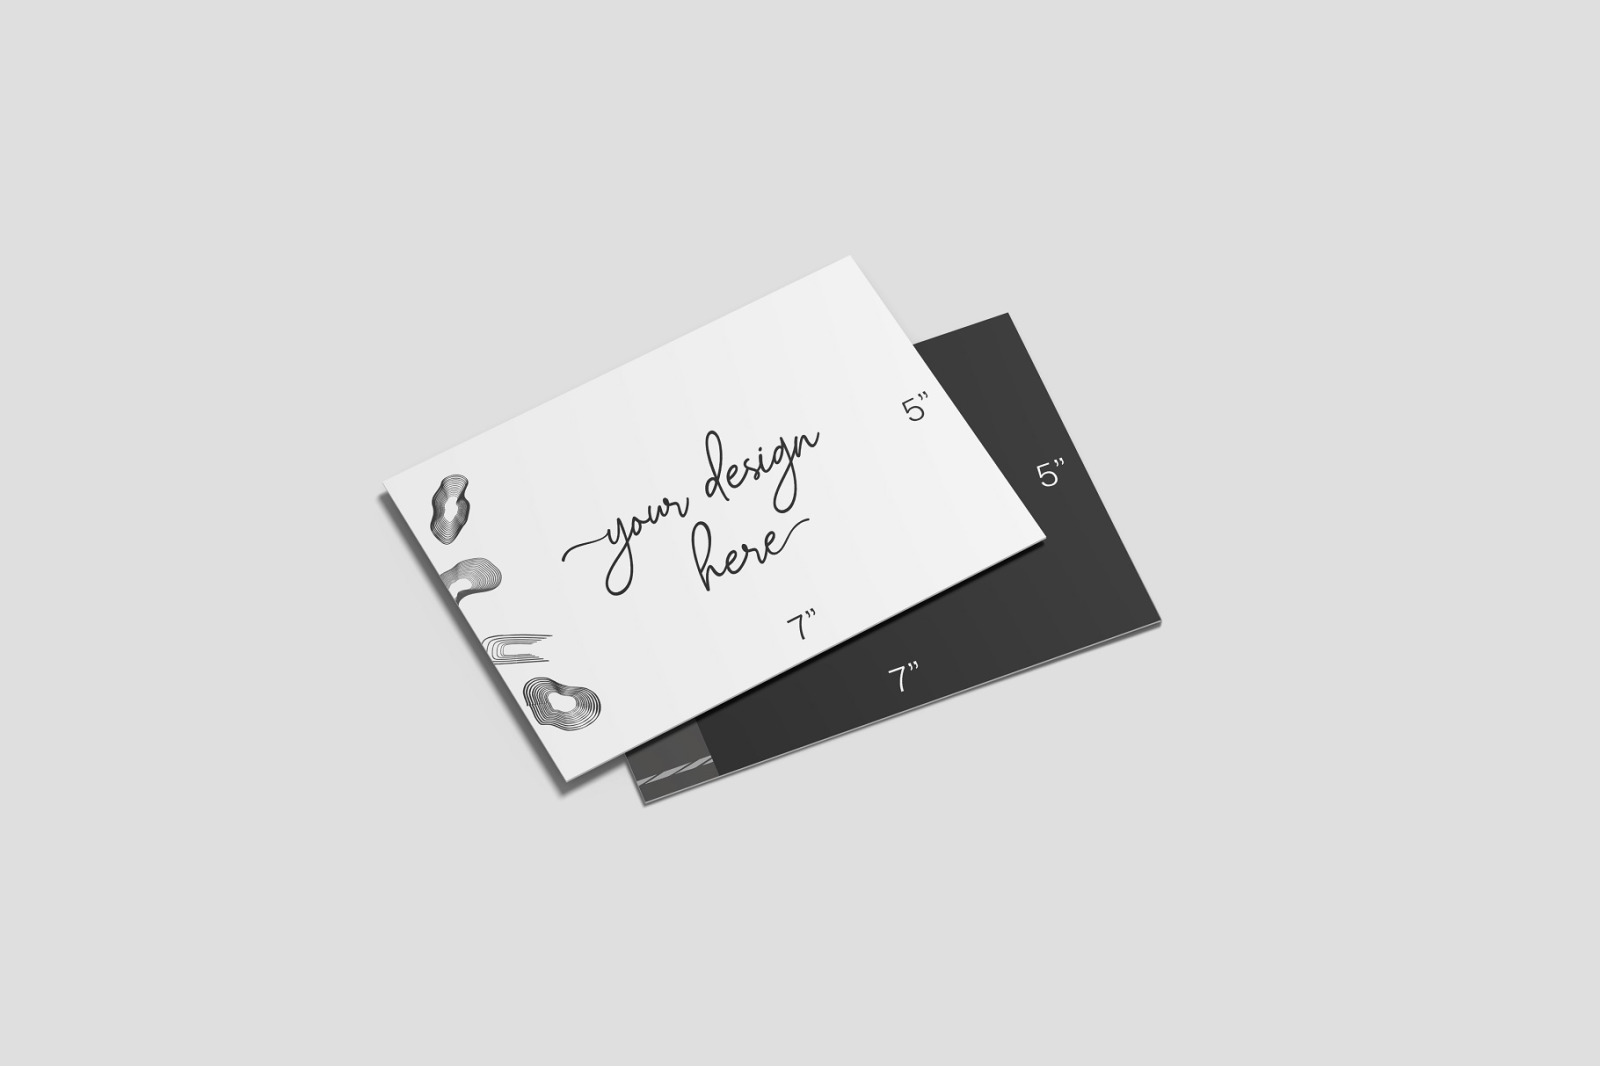 5x7 Inches Postcard and Envelope Mockups